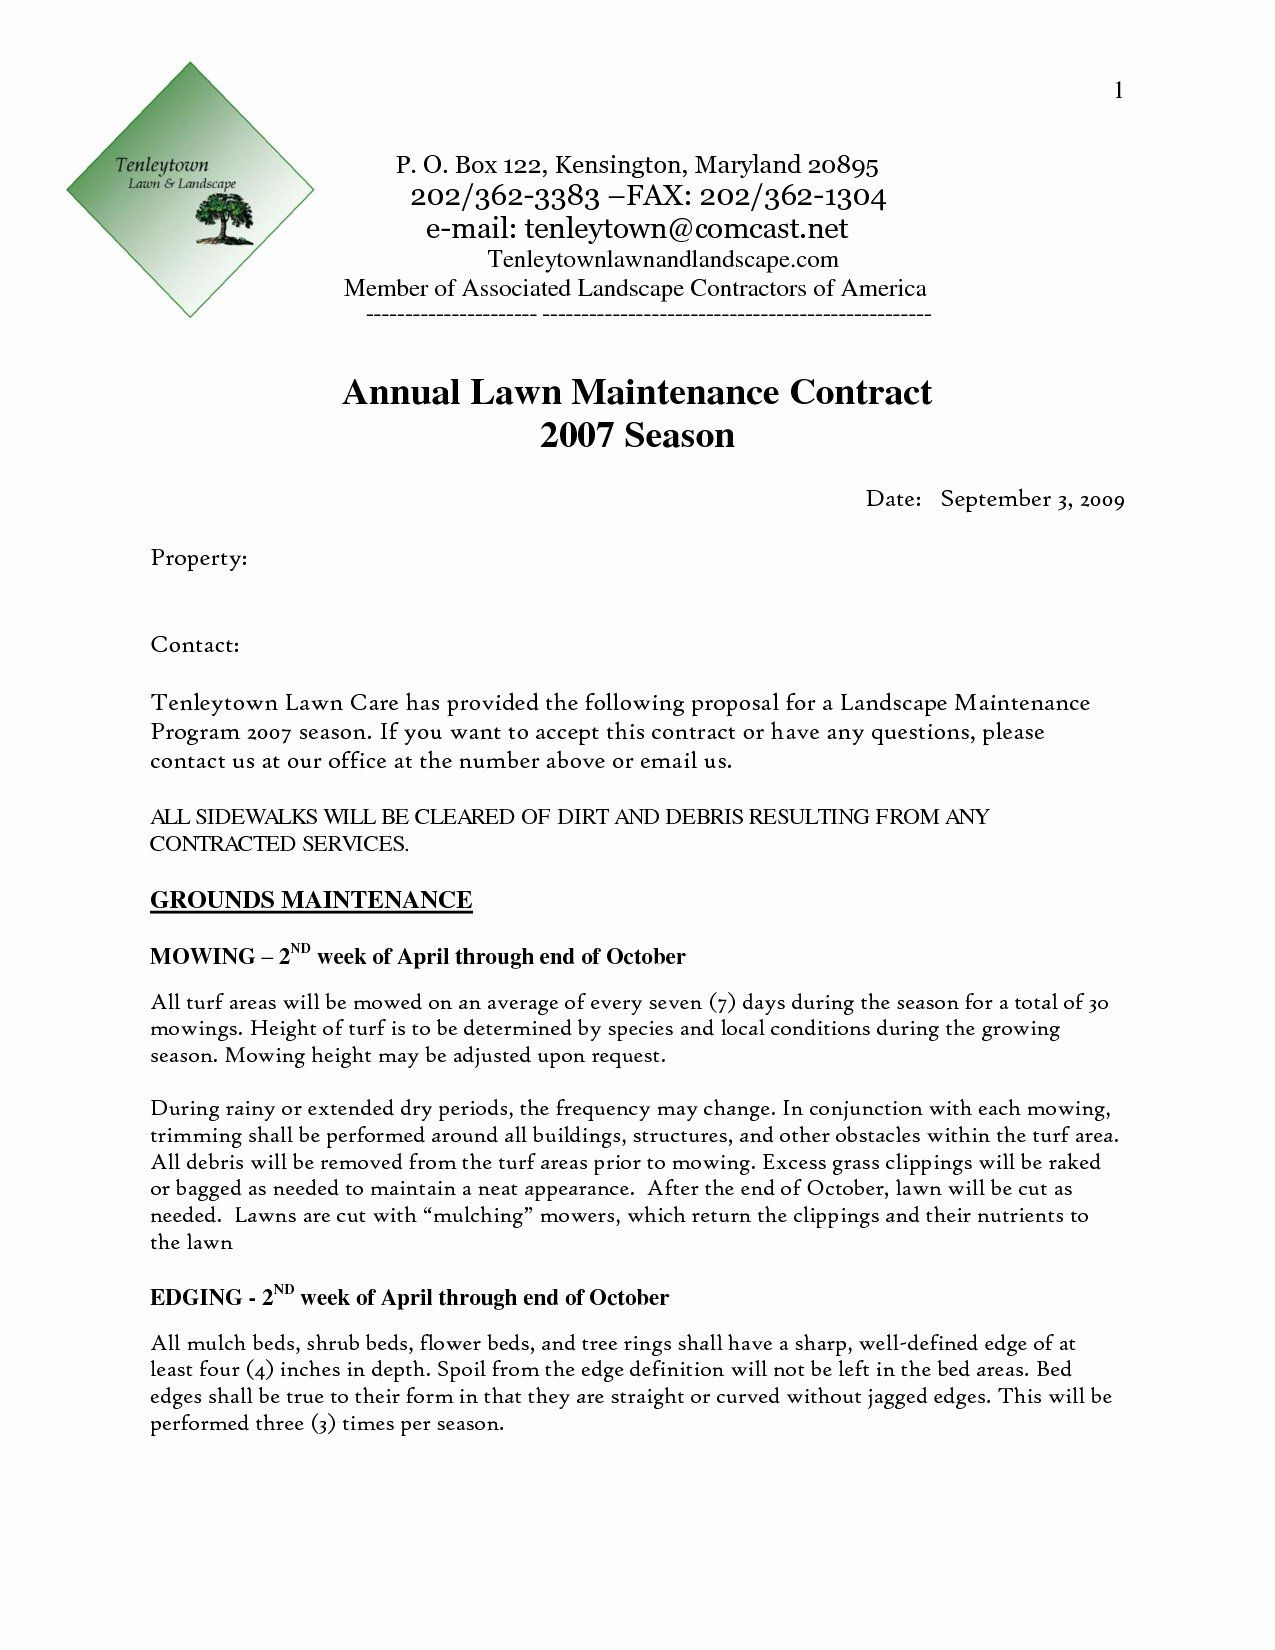 Free Bid Proposal Template New Landscaping Bid Templates Proposal Templates Landscape Maintenance Contract Template